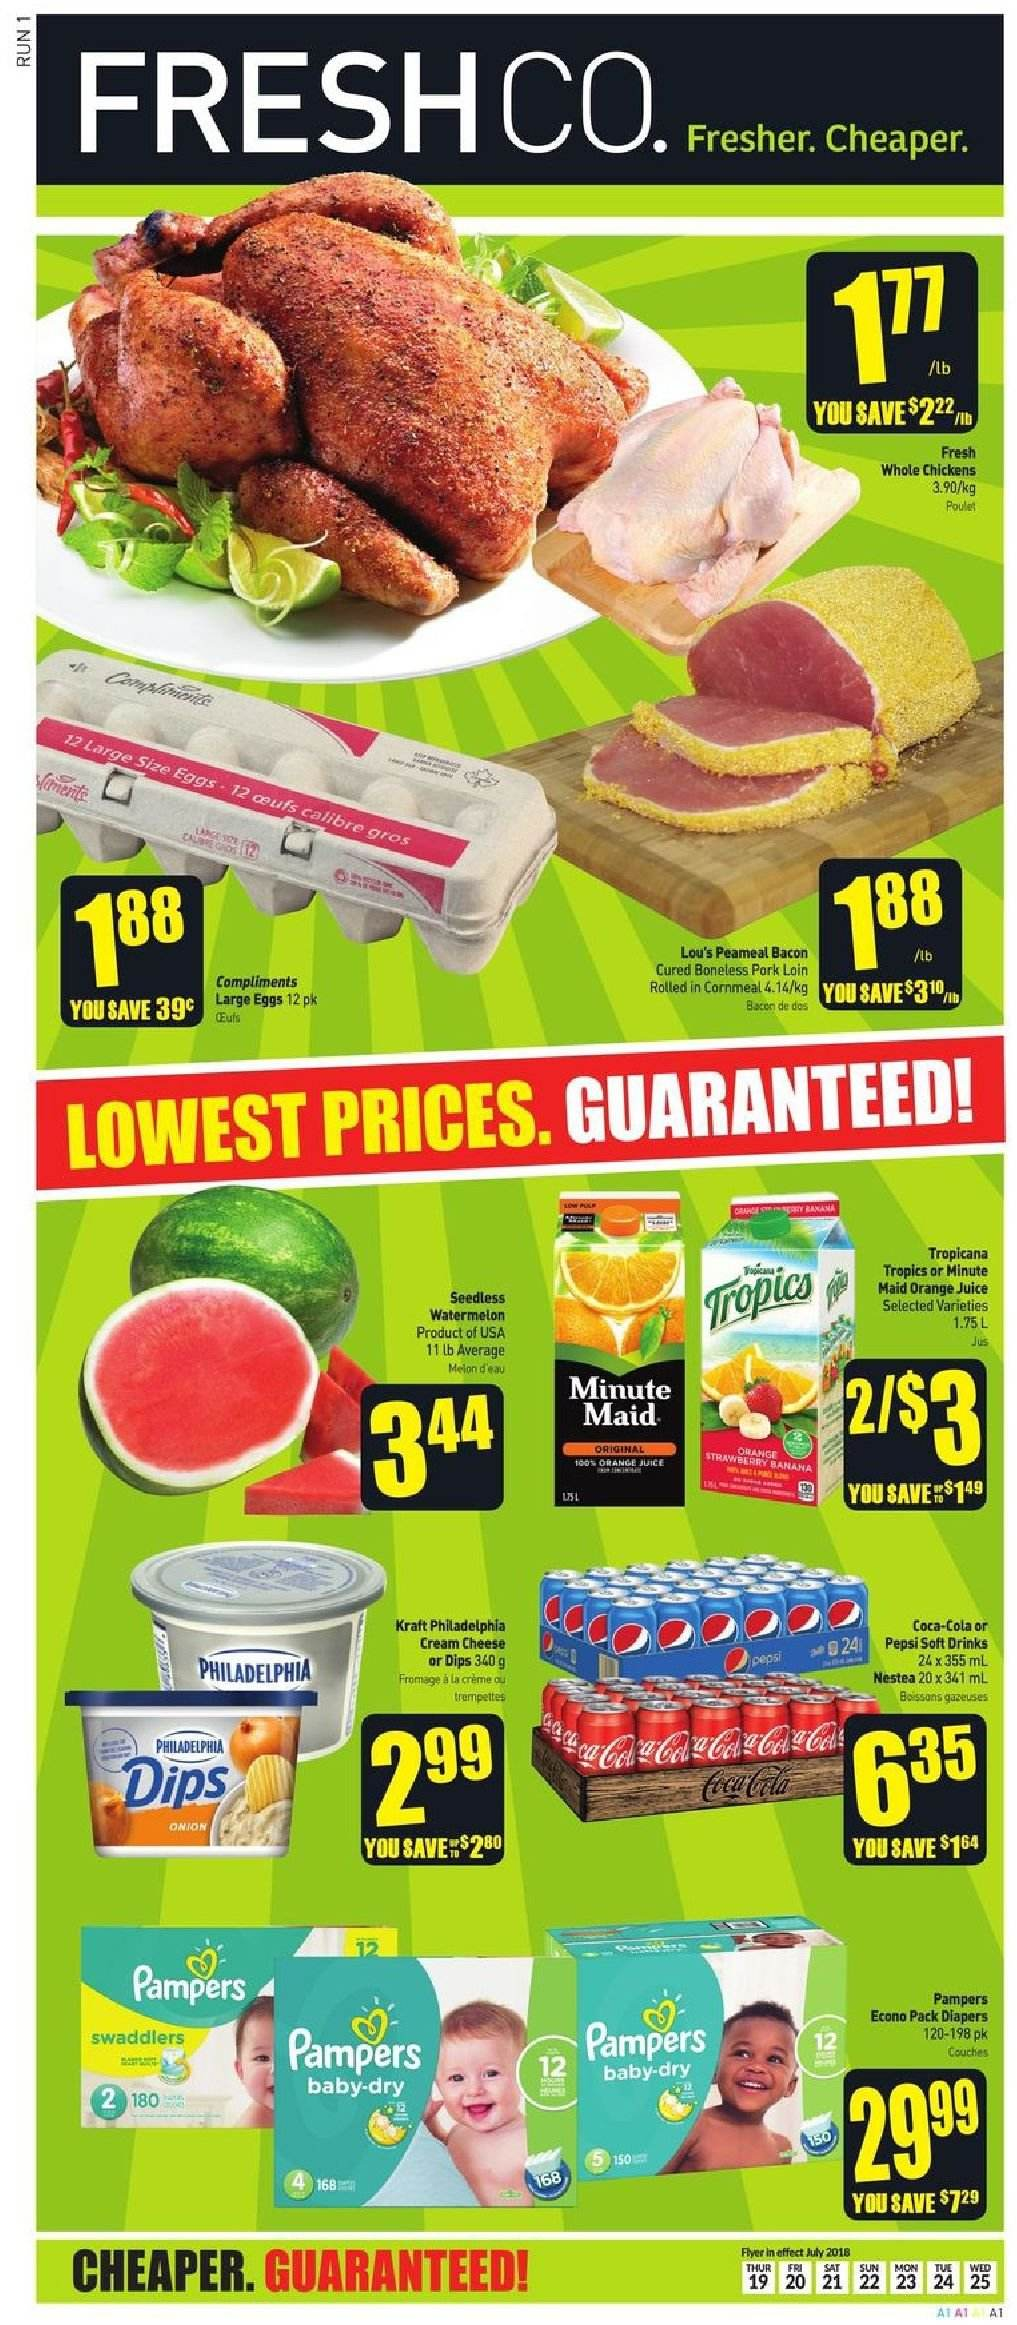 FreshCo. Flyer  - July 19, 2018 - July 25, 2018. Page 1.